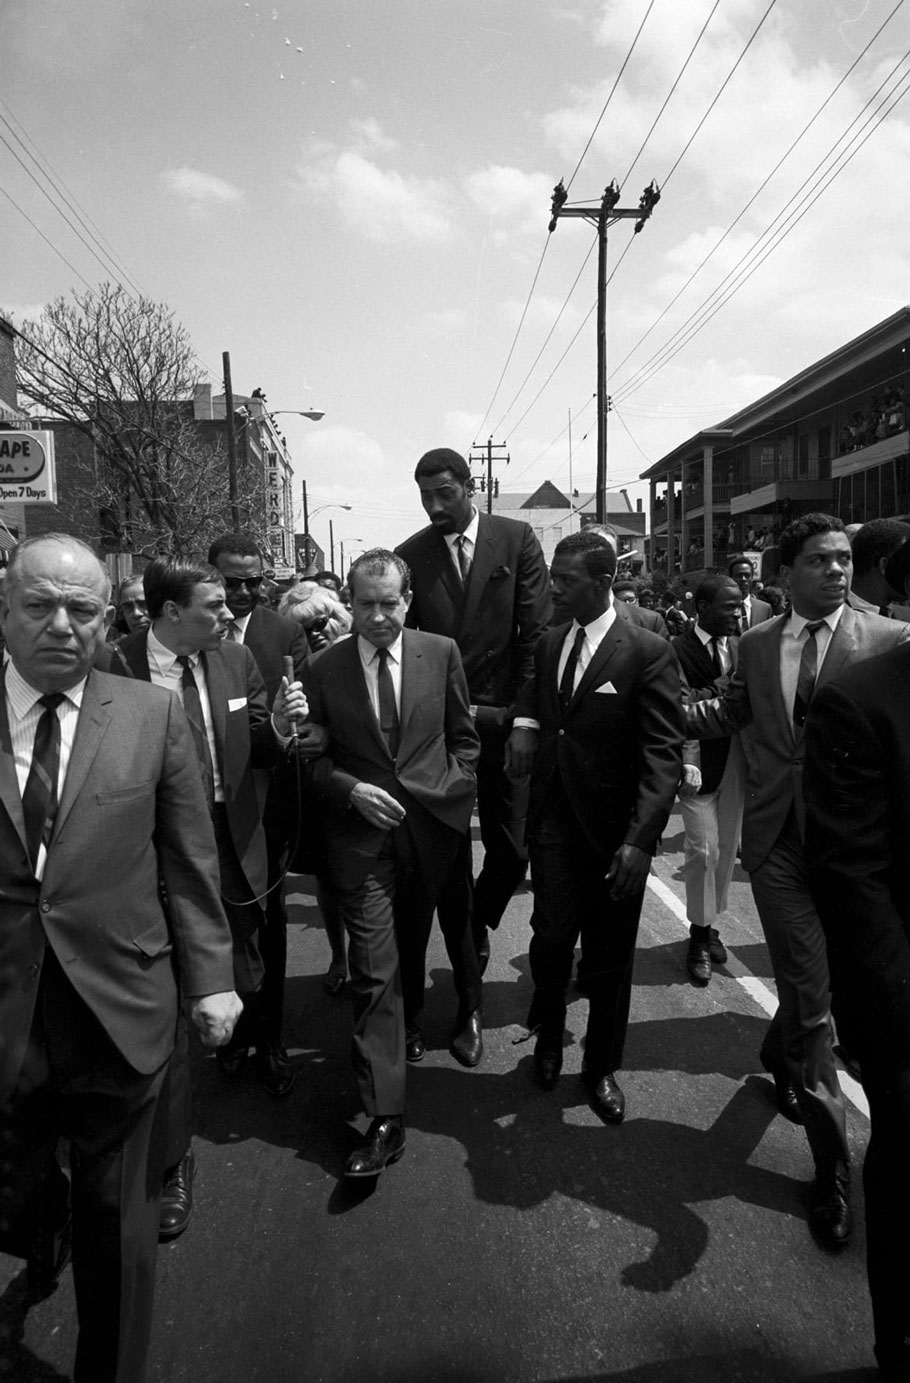 At the funeral of Dr. Martin Luther King Jr., Richard Nixon, surrounded by bodyguards, follows the funeral procession.